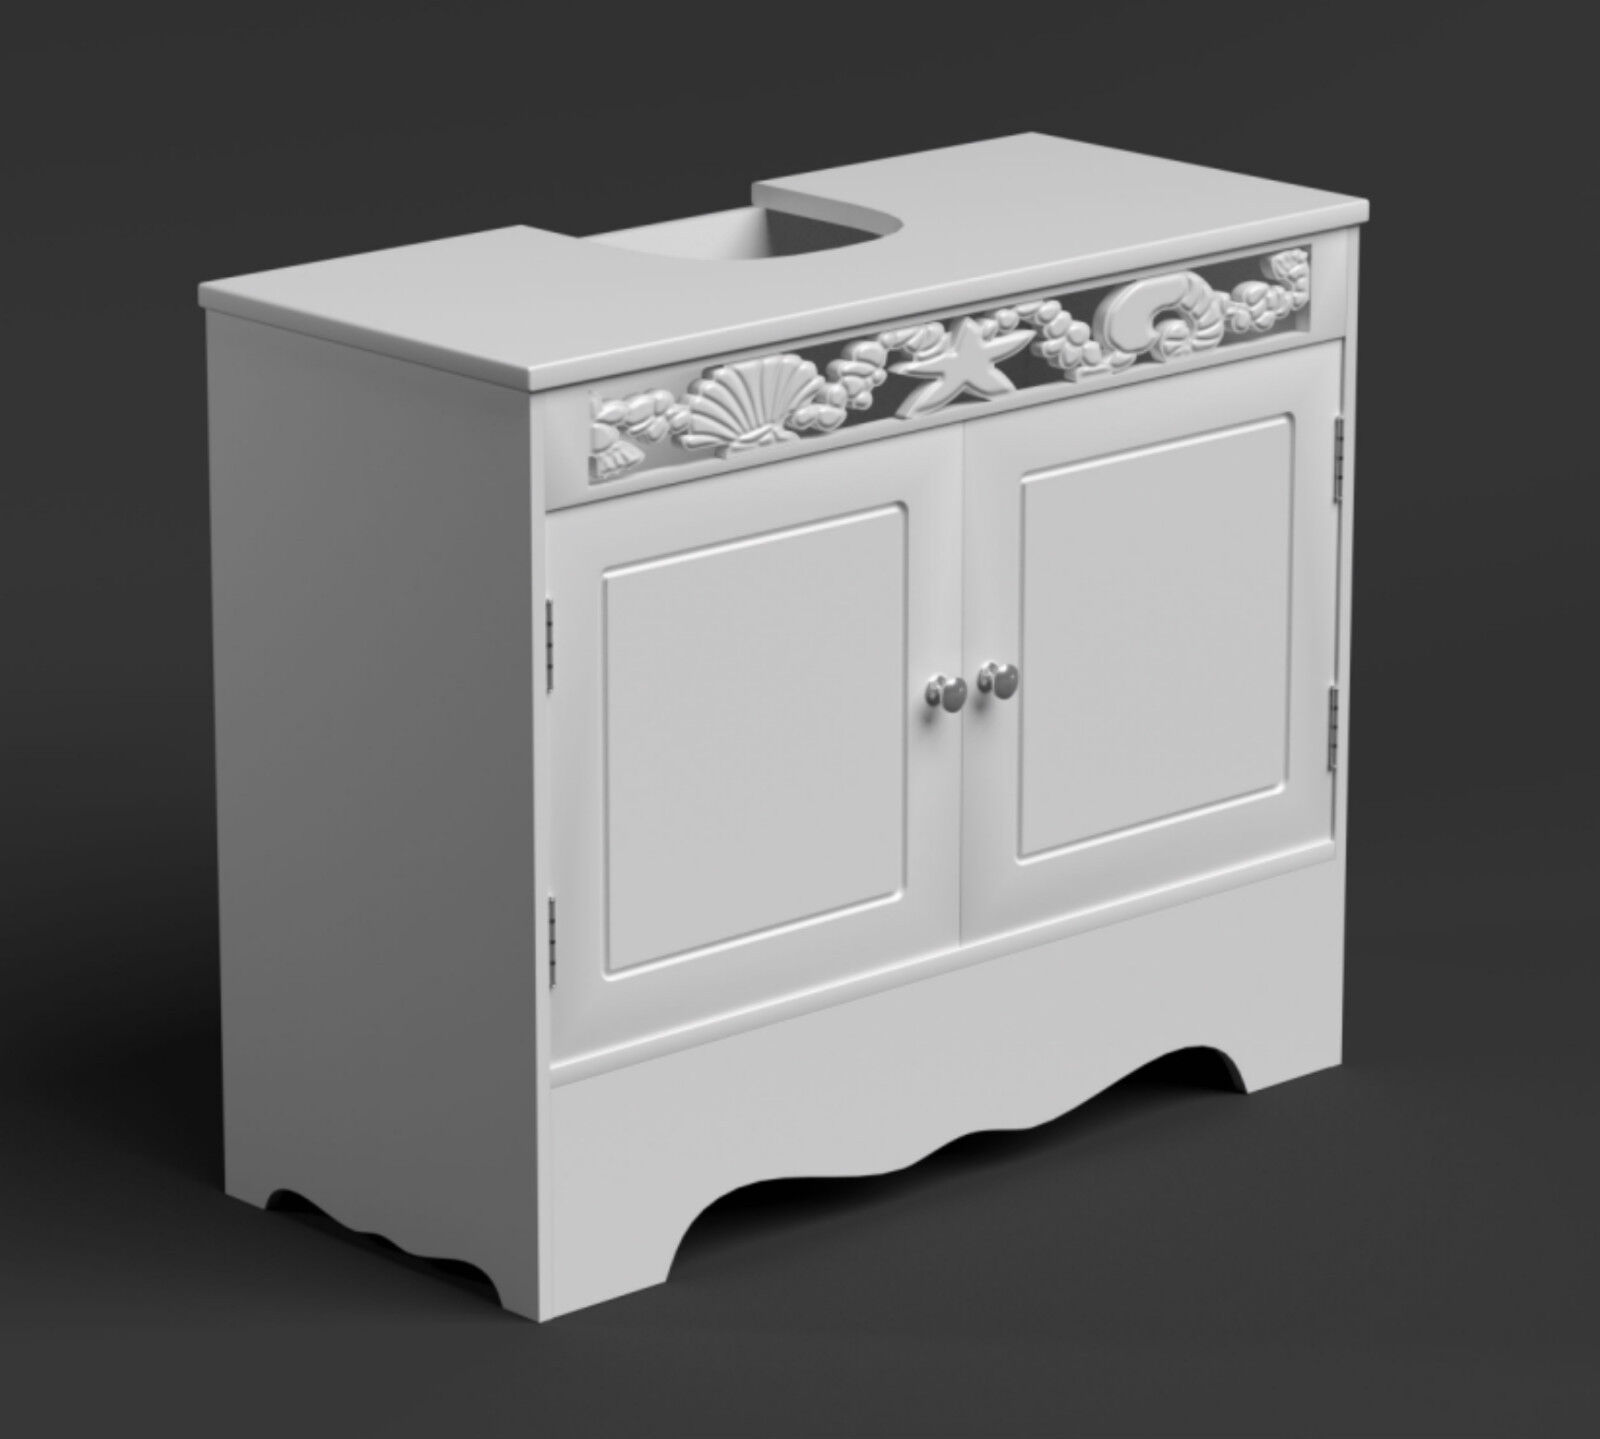 under counter storage cabinet sink basin cabinet bathroom storage unit white 27554